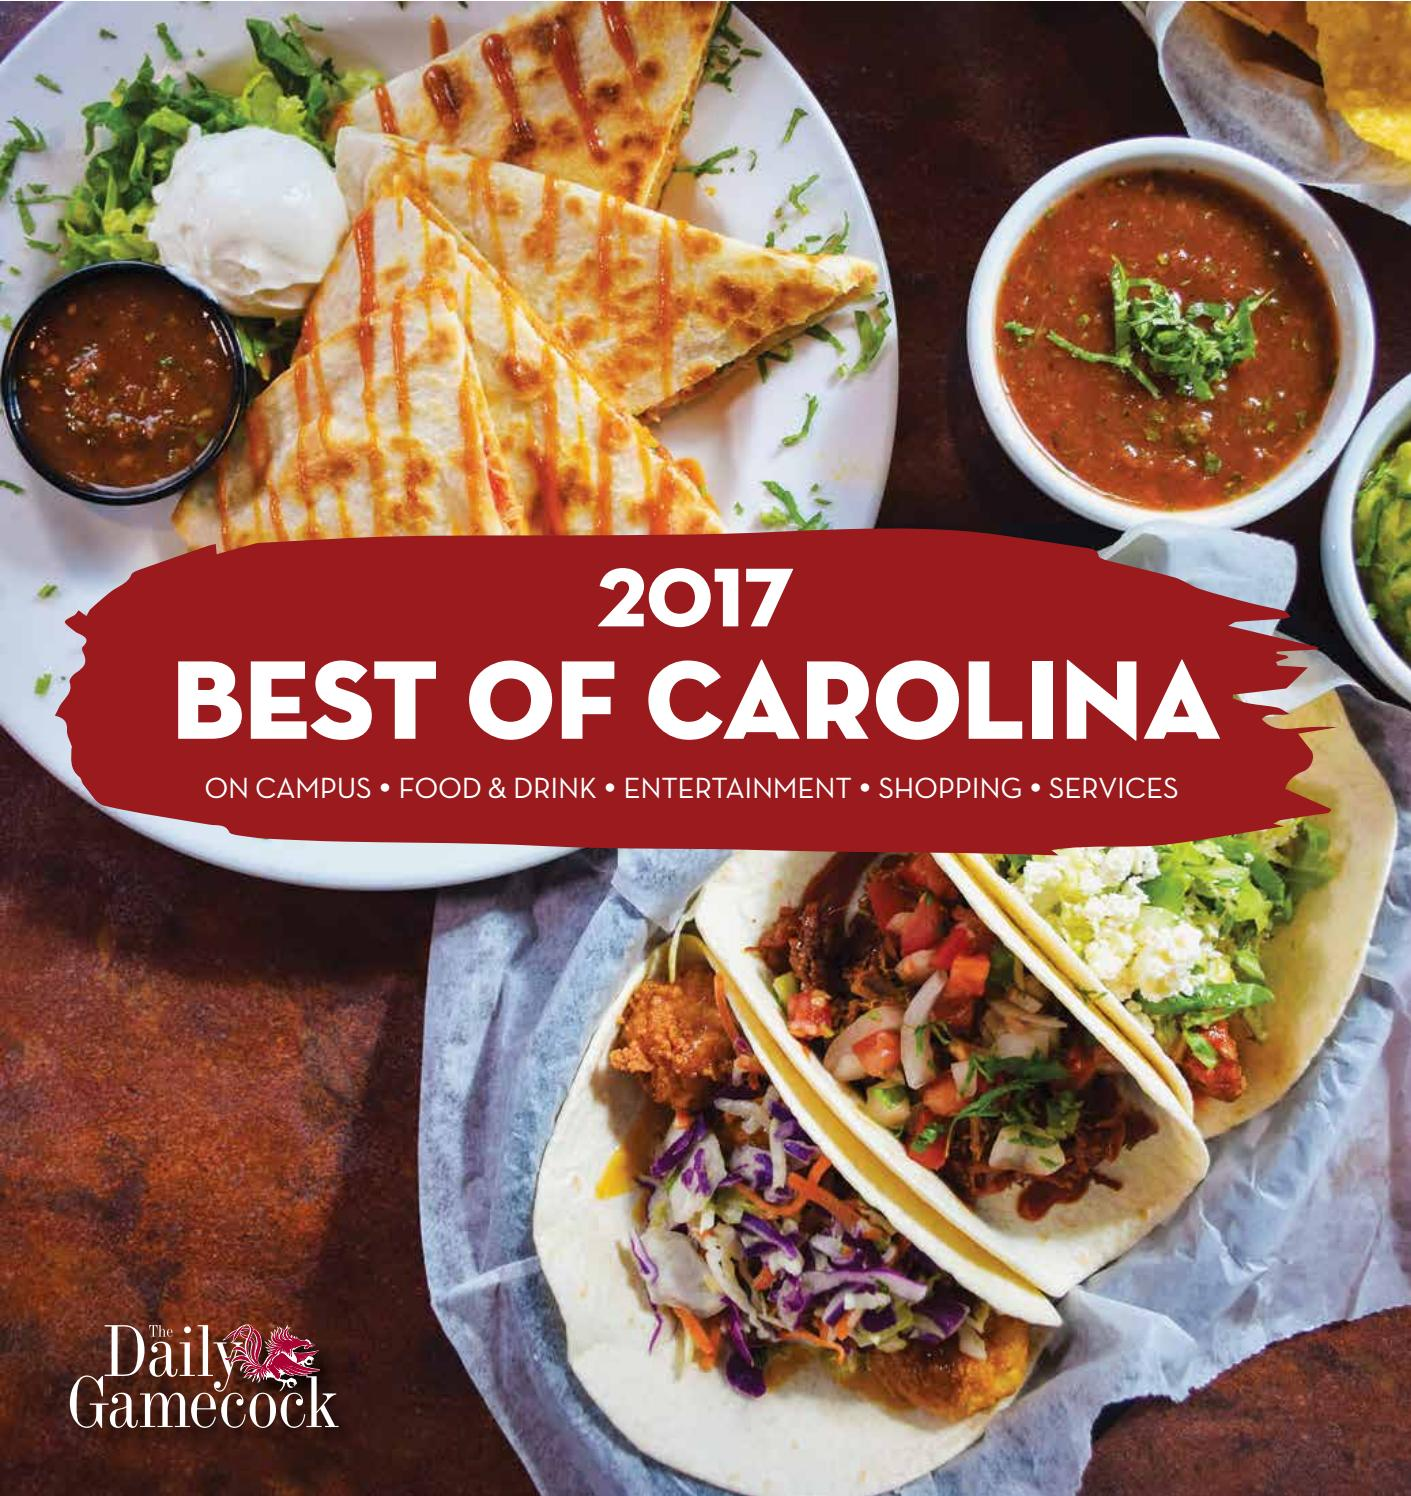 Best of Carolina 2017 by The Daily Gamecock - issuu